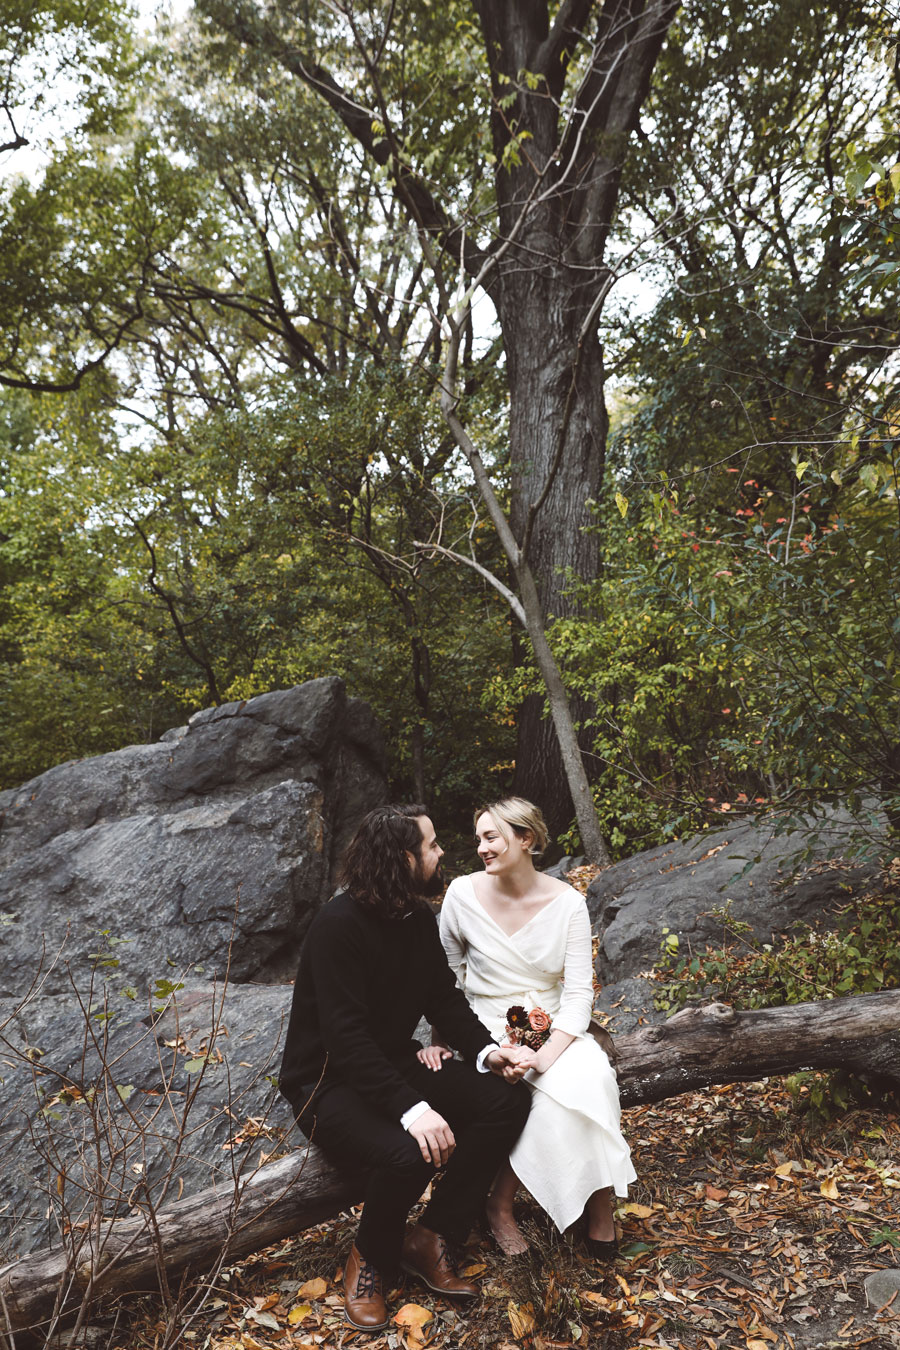 Secret wedding in Central Park